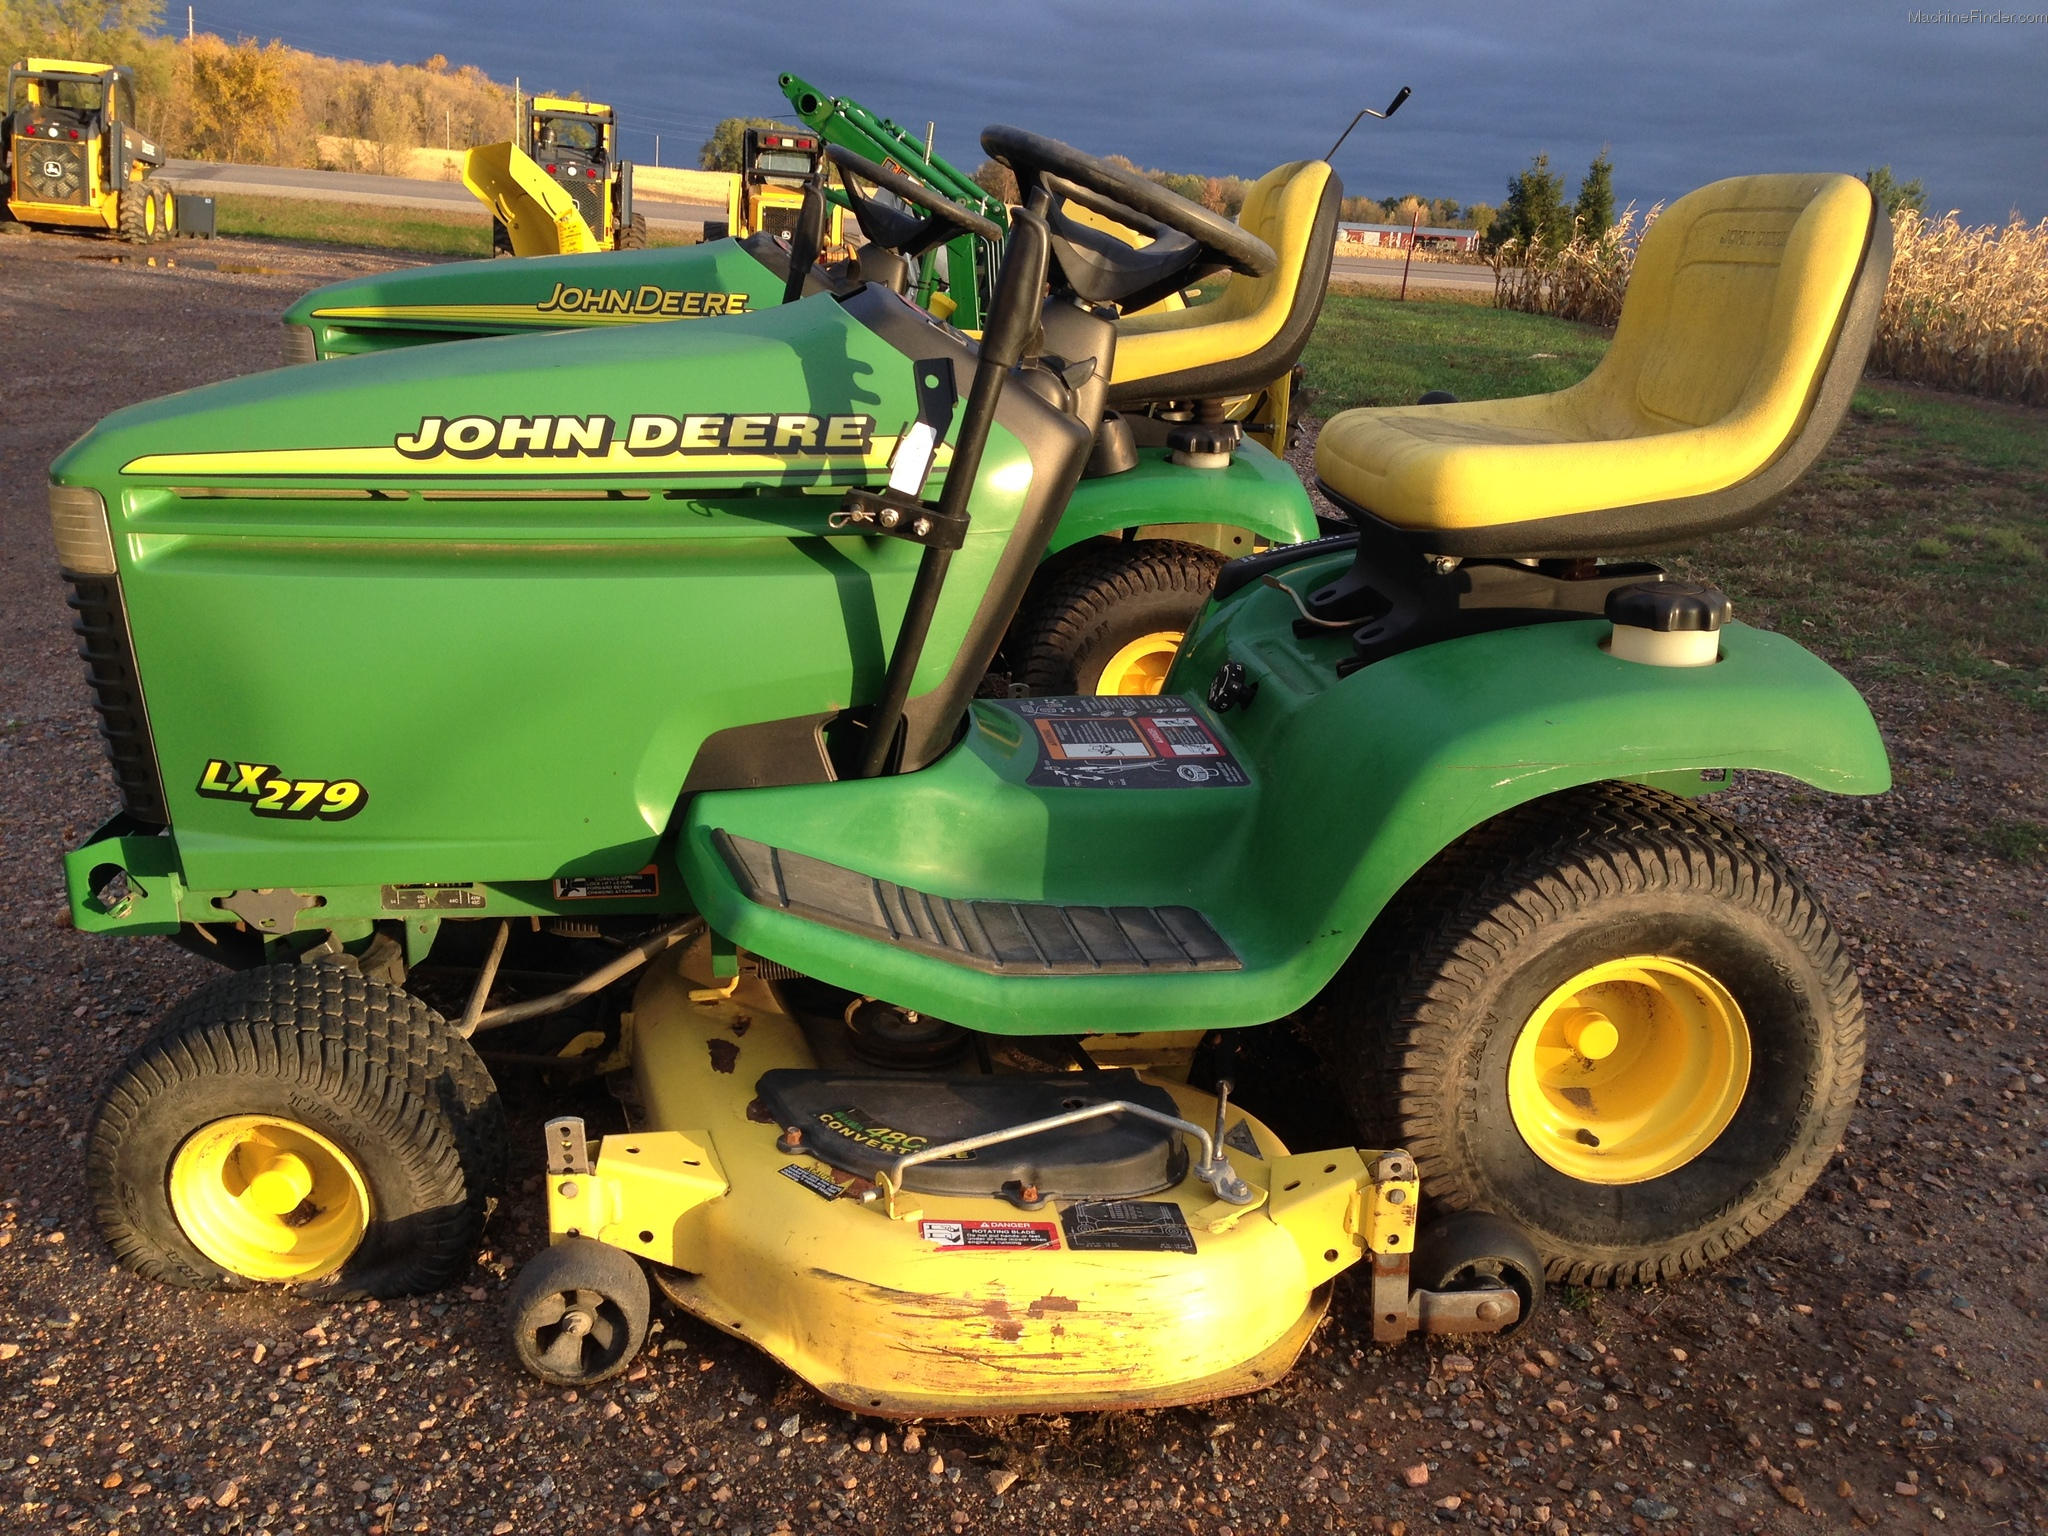 John Deere Lx279 Manual Manuals Wiring Diagram 1999 Lawn Garden And Commercial Mowing